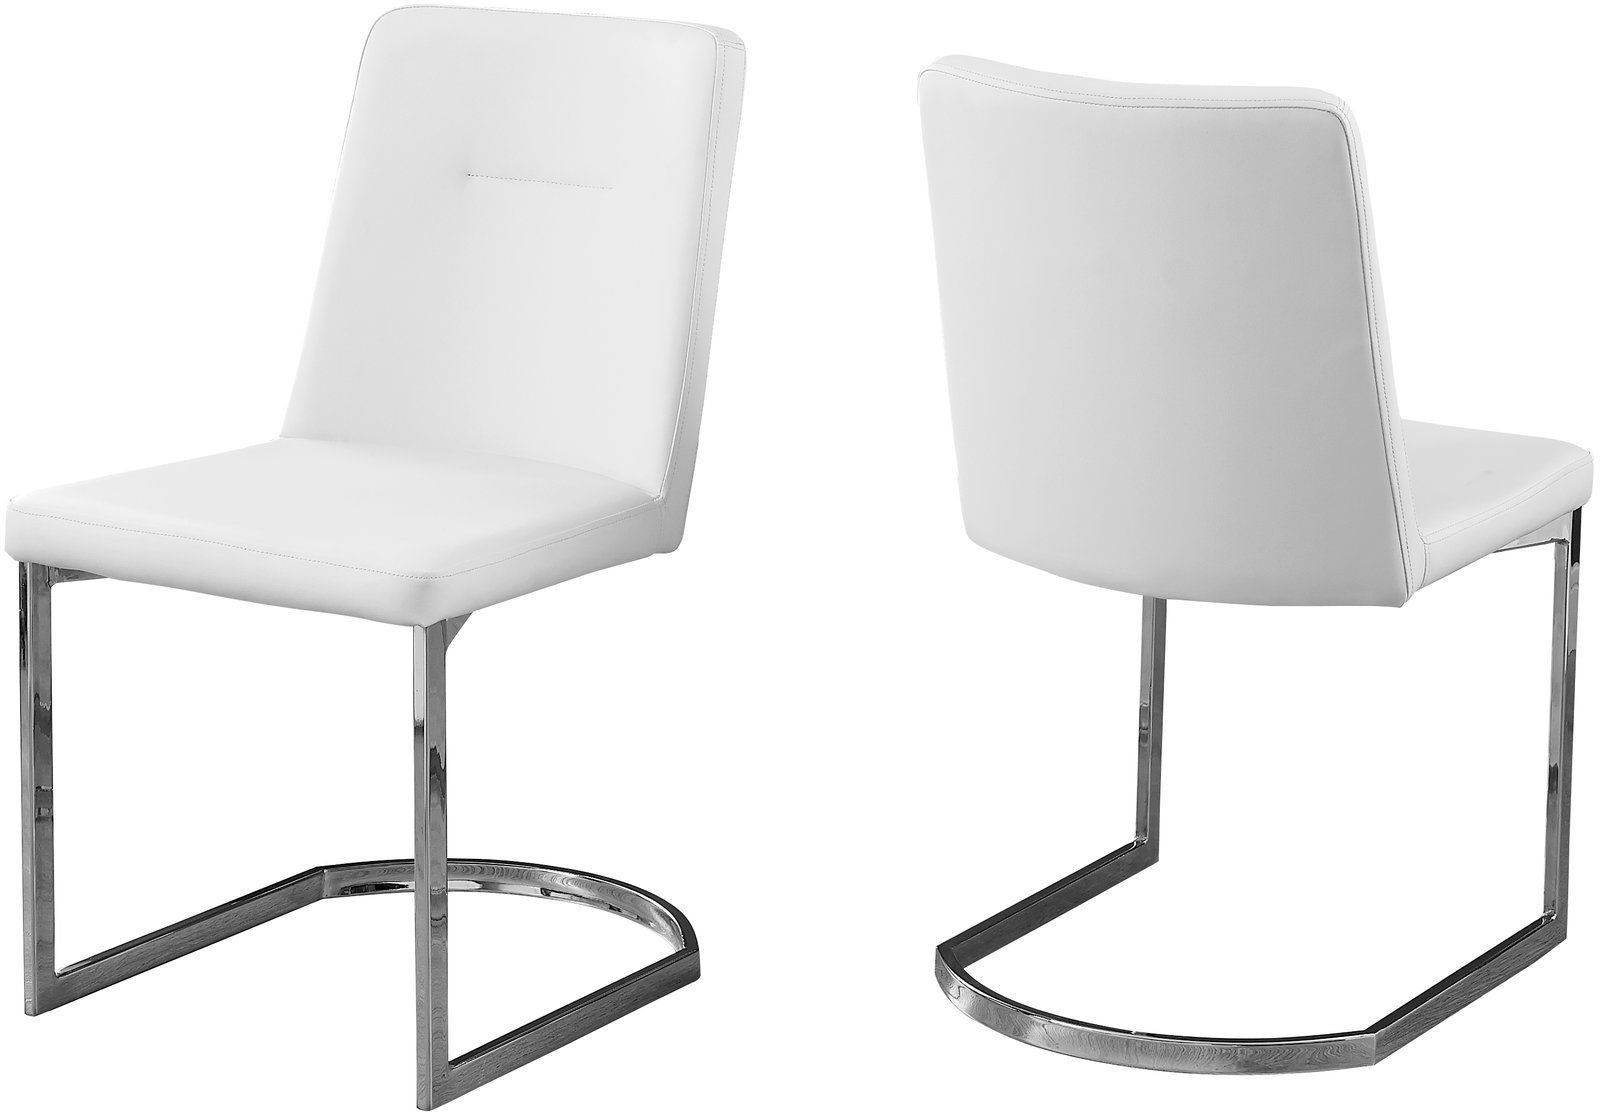 White and chrome 34 h dining chair set of 2 from monarch for White chrome dining chairs